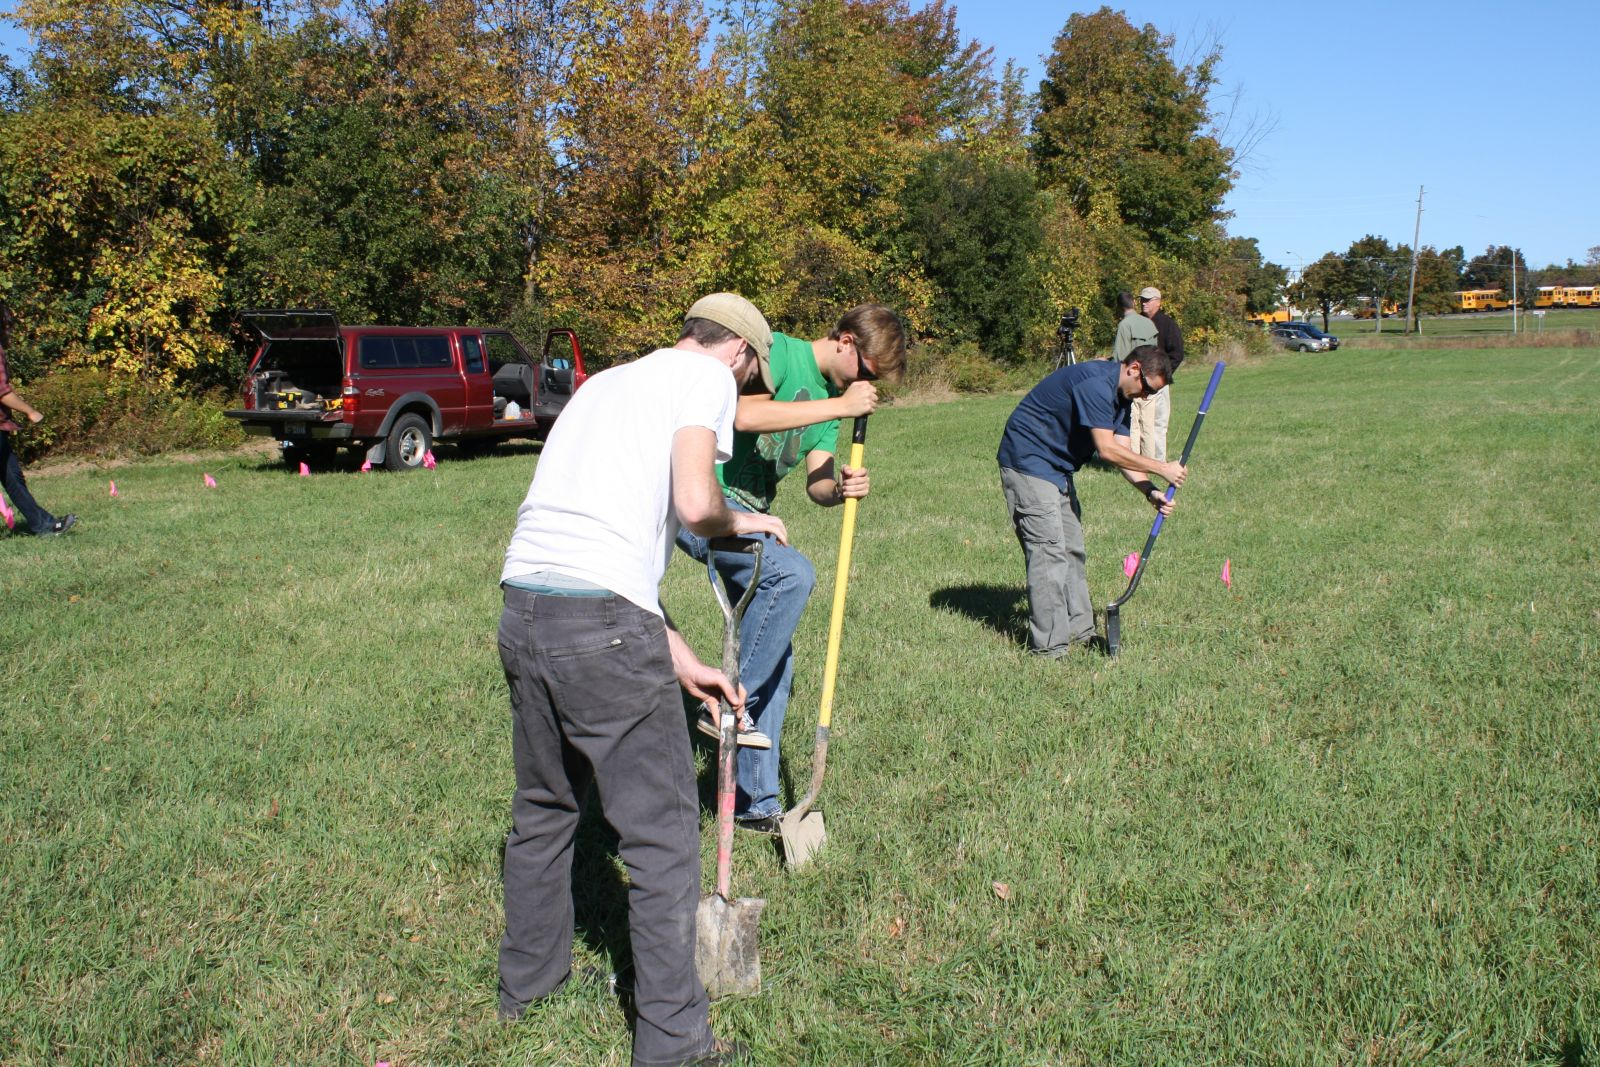 Students excavating at a historic cemetery site in Clinton County